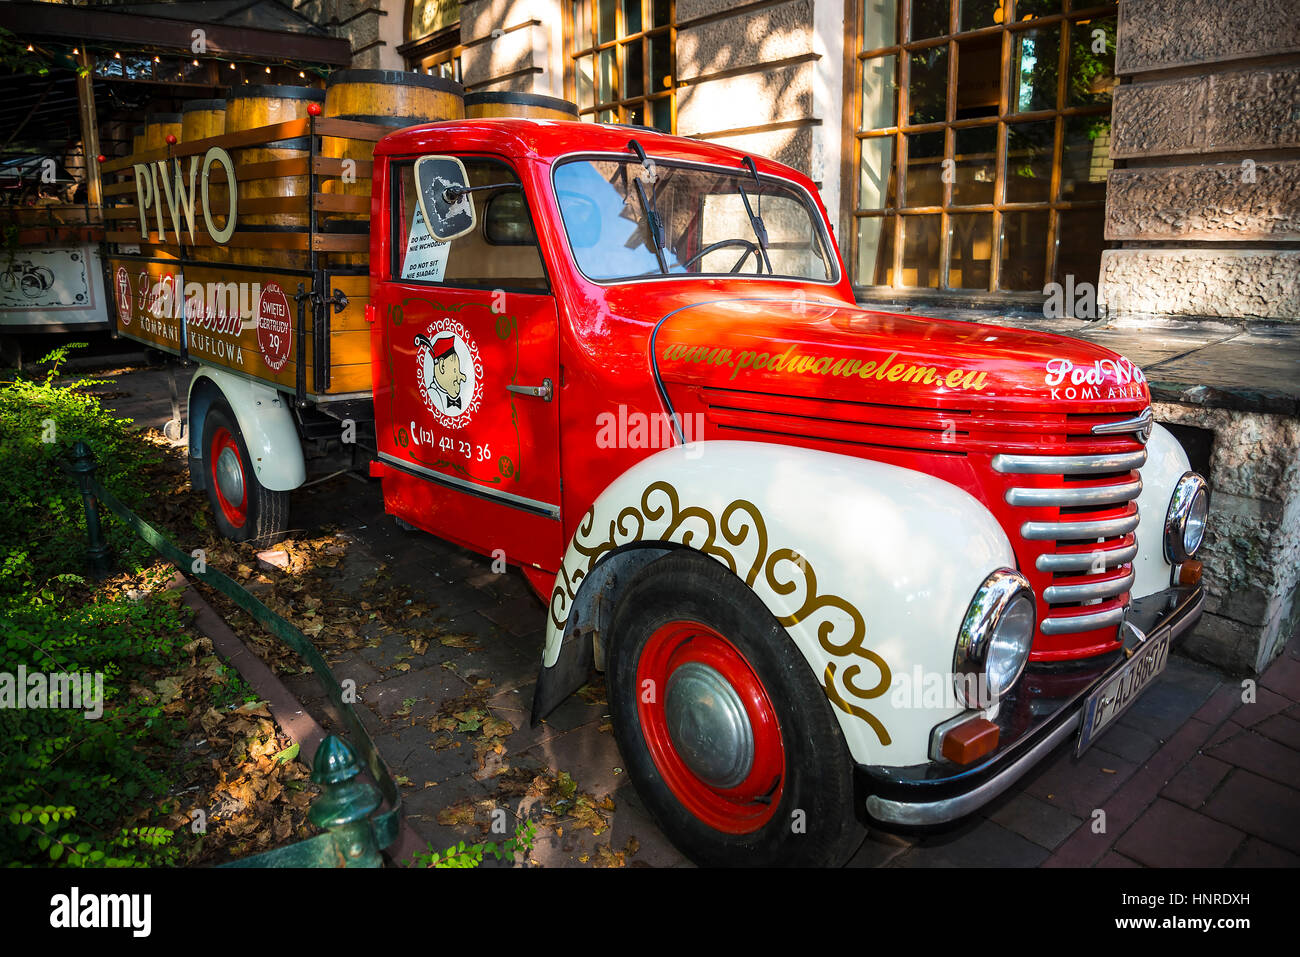 Vintage beer truck that stands near one of the most famous beer halls in Krakow Poland. Piwo is Polish for Beer - Stock Image